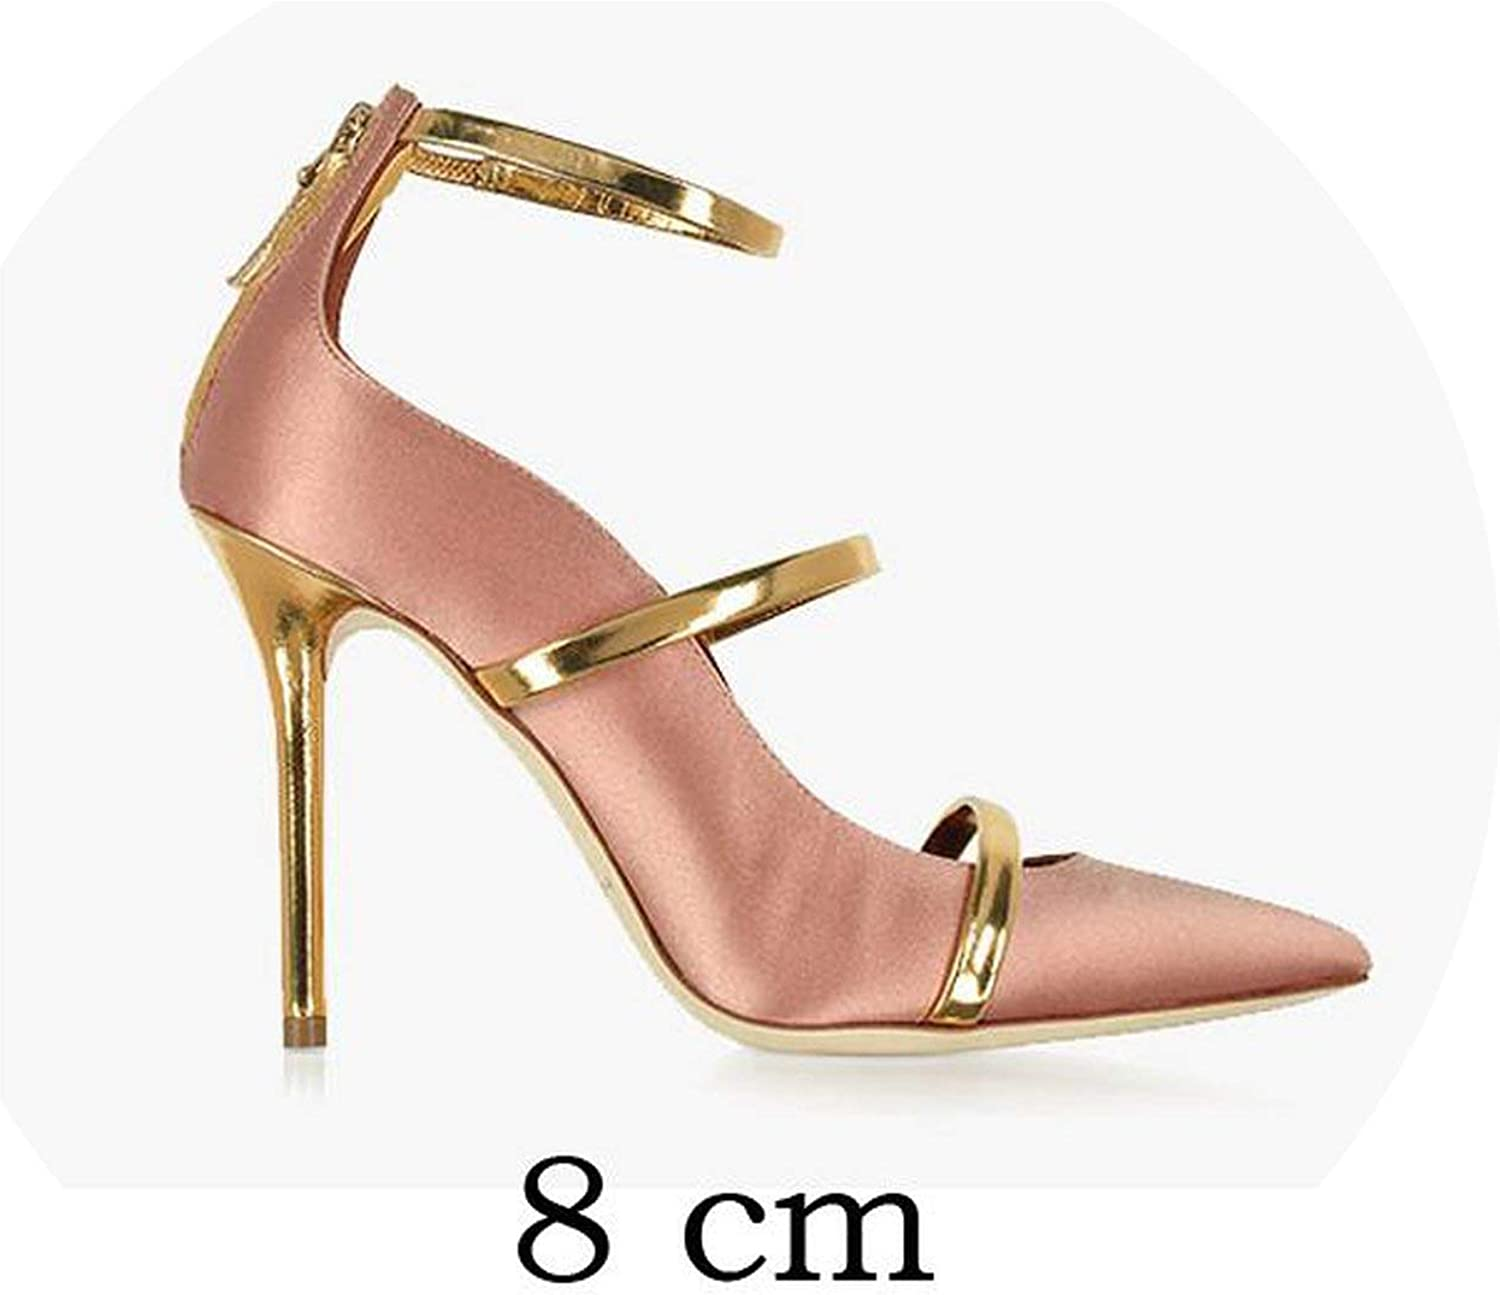 Straps Pointed Toe High Heel Wedding Dress shoes Stiletto Gladiator Pumps